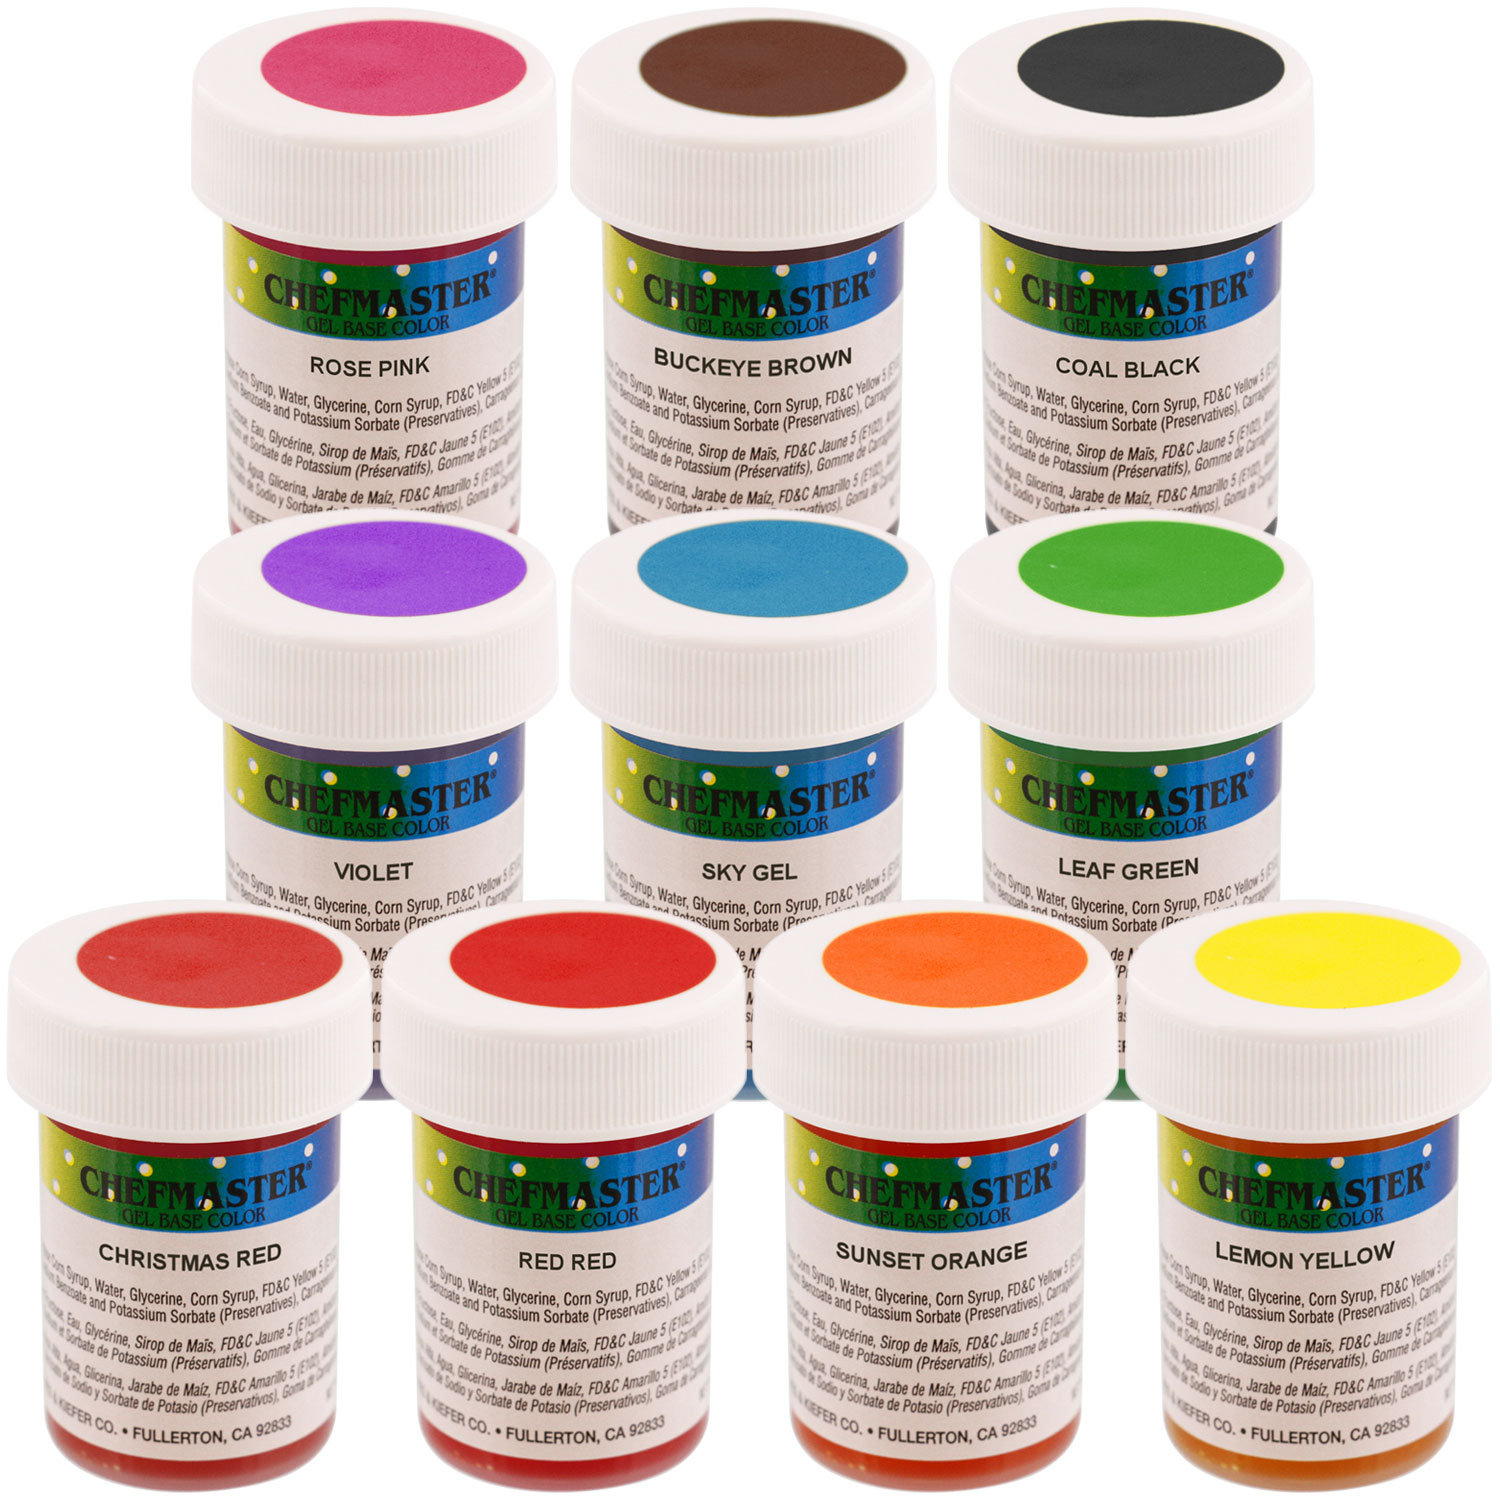 Details about Chefmaster by US Cake Supply 1-Ounce Gel Base Food Color  Student Kit - 10 Color